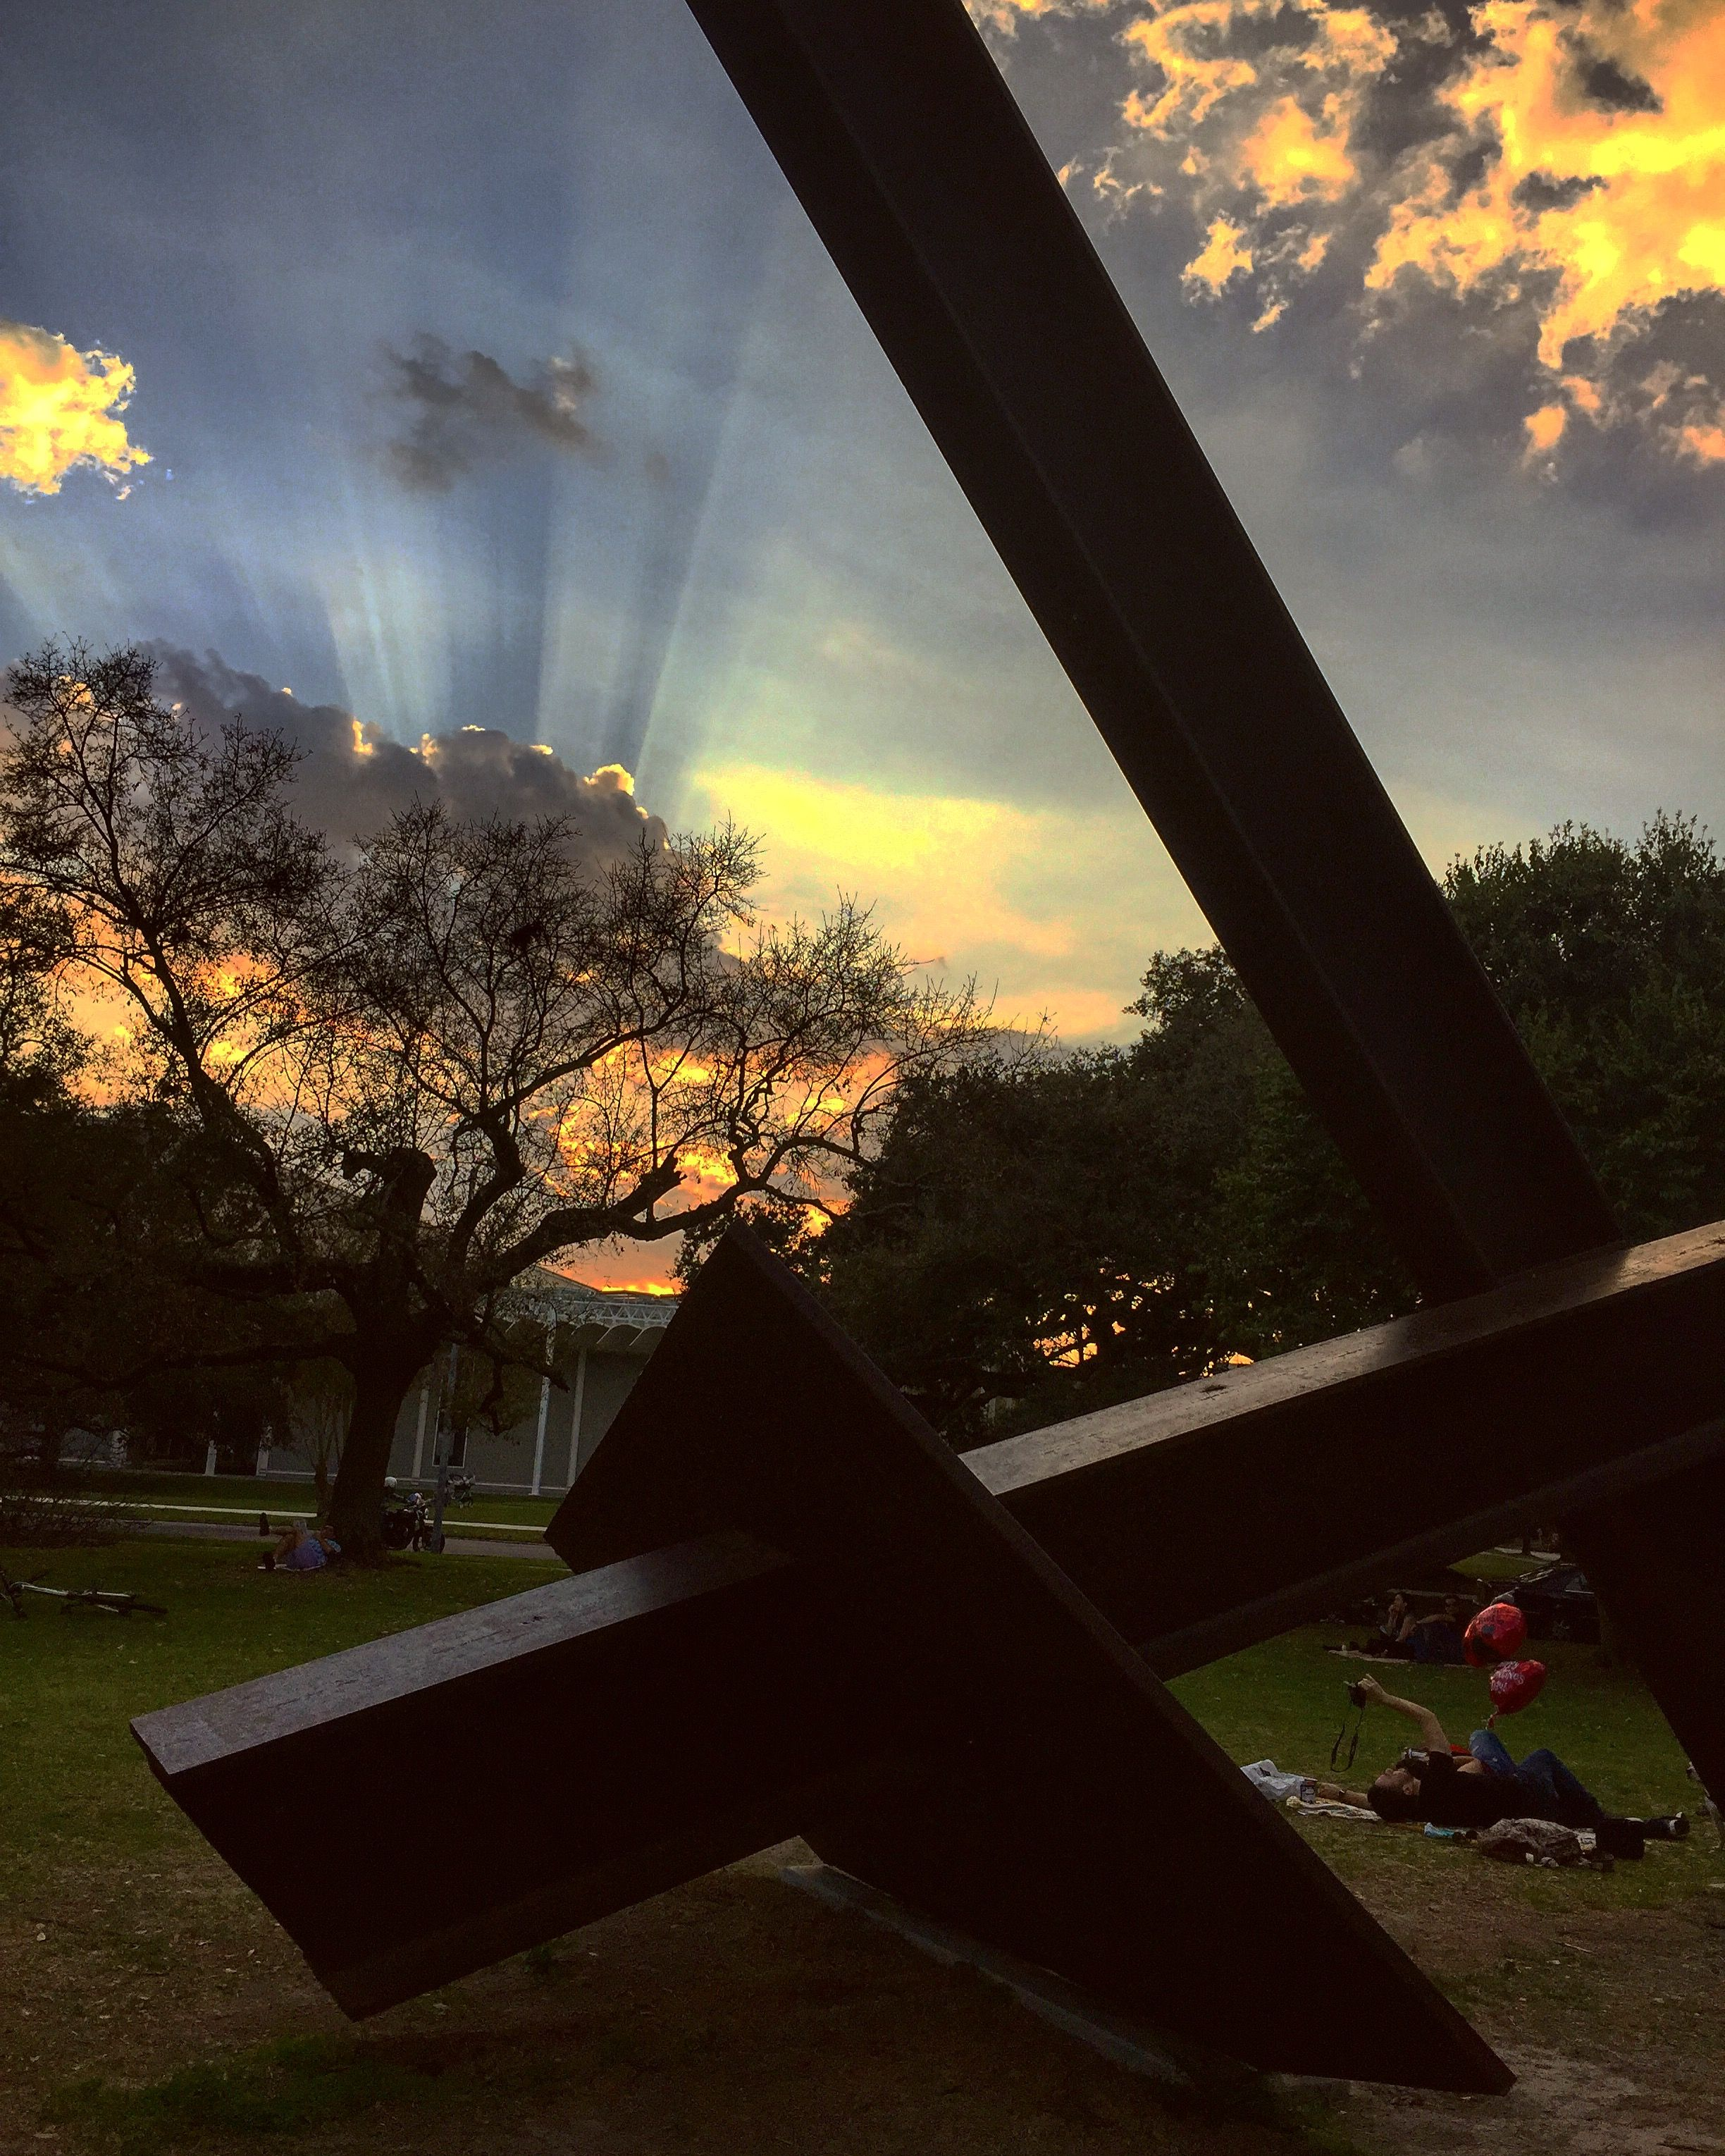 Shot this at the Menil Collection on before Valentines day. A lot of people were here enjoying this beautiful day. I managed to snap a couple doing a selfie while I shot the sunset.